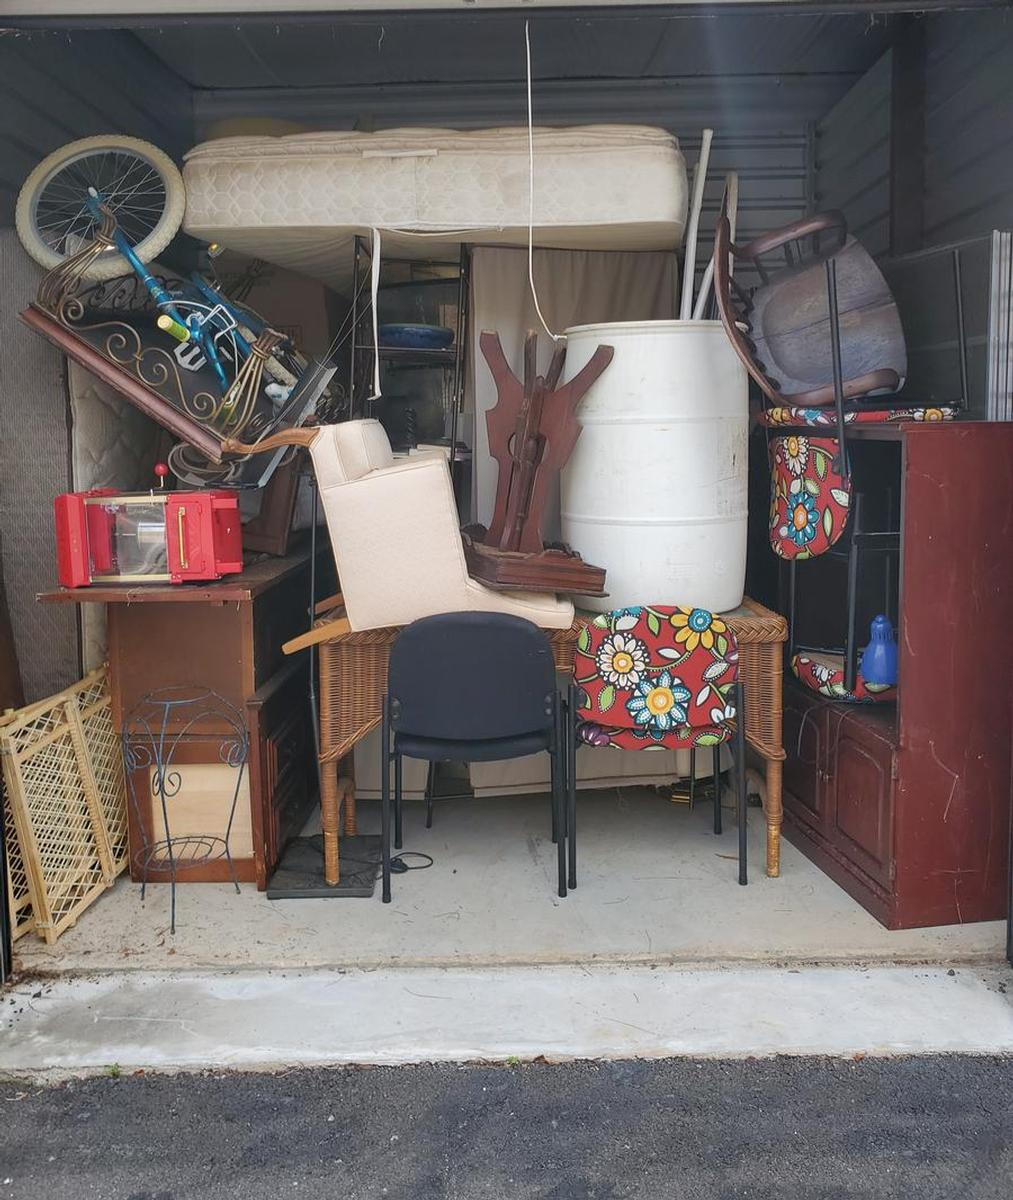 Self Storage Auction #103634 - Image 5 antiques,bicycle,books,boxes / totes,cabinet,clothing,electronics,furniture,holiday decor,home goods,lamps,mattress,office equipment,outdoor goods,shelves,shoes,sports equipment,tools,toys / baby items,wall art